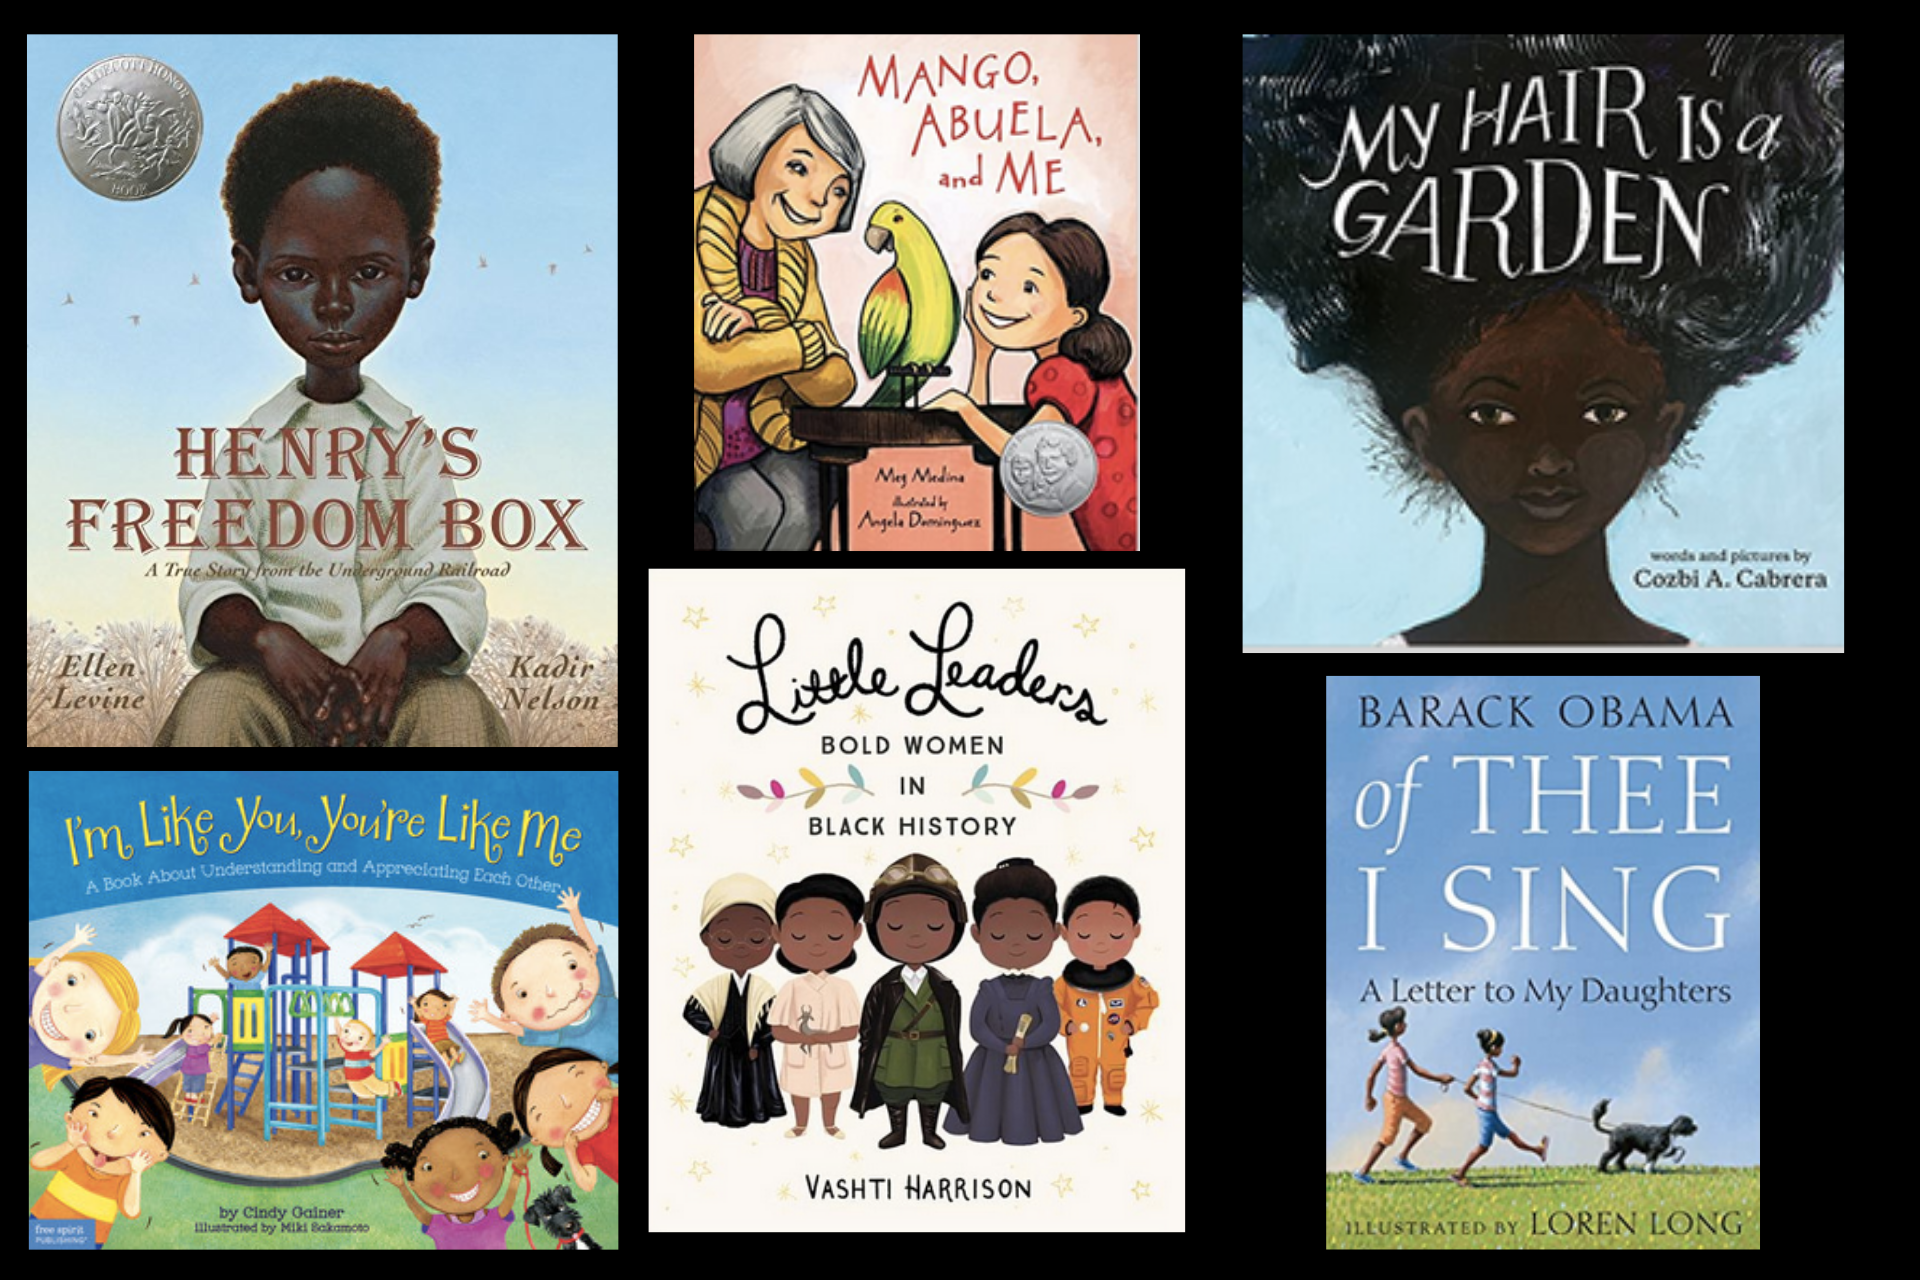 An image of several book covers about race for children